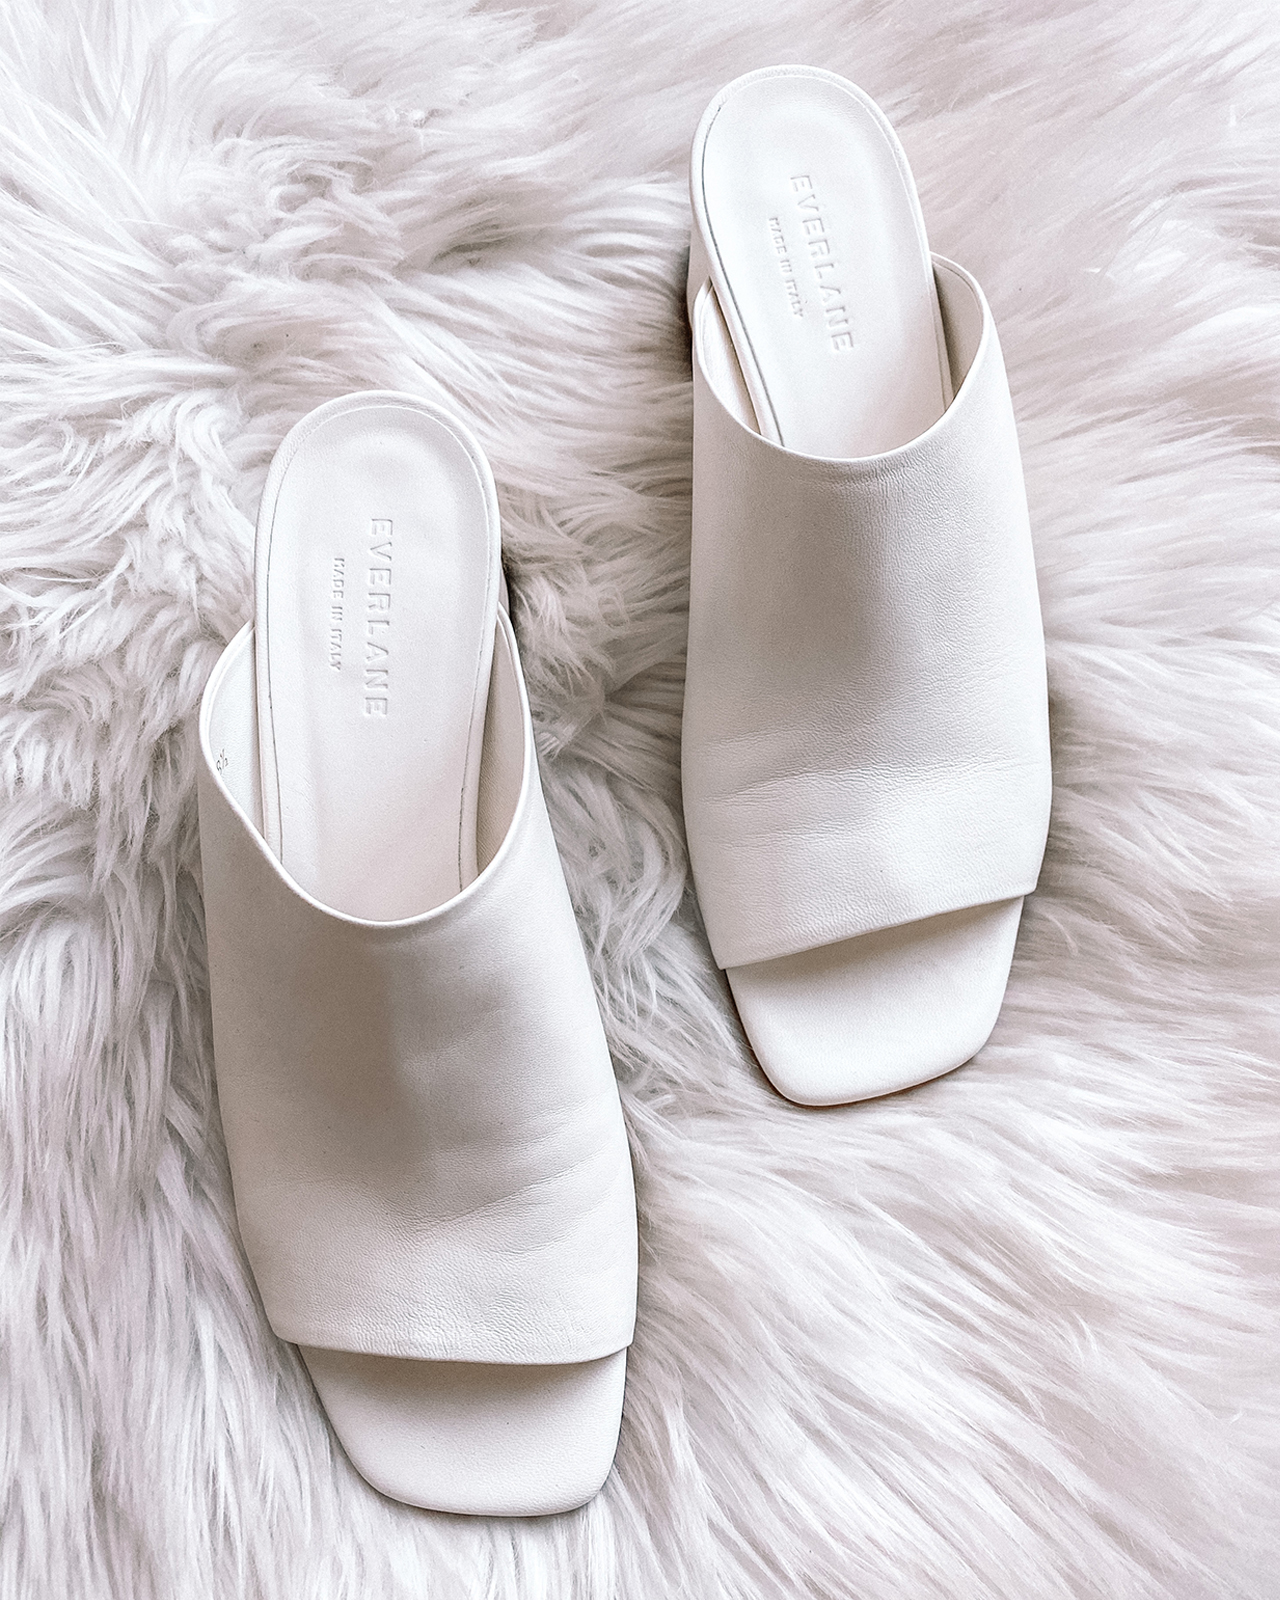 Fashion Jackson Everlane White Heeled Mule Sandals